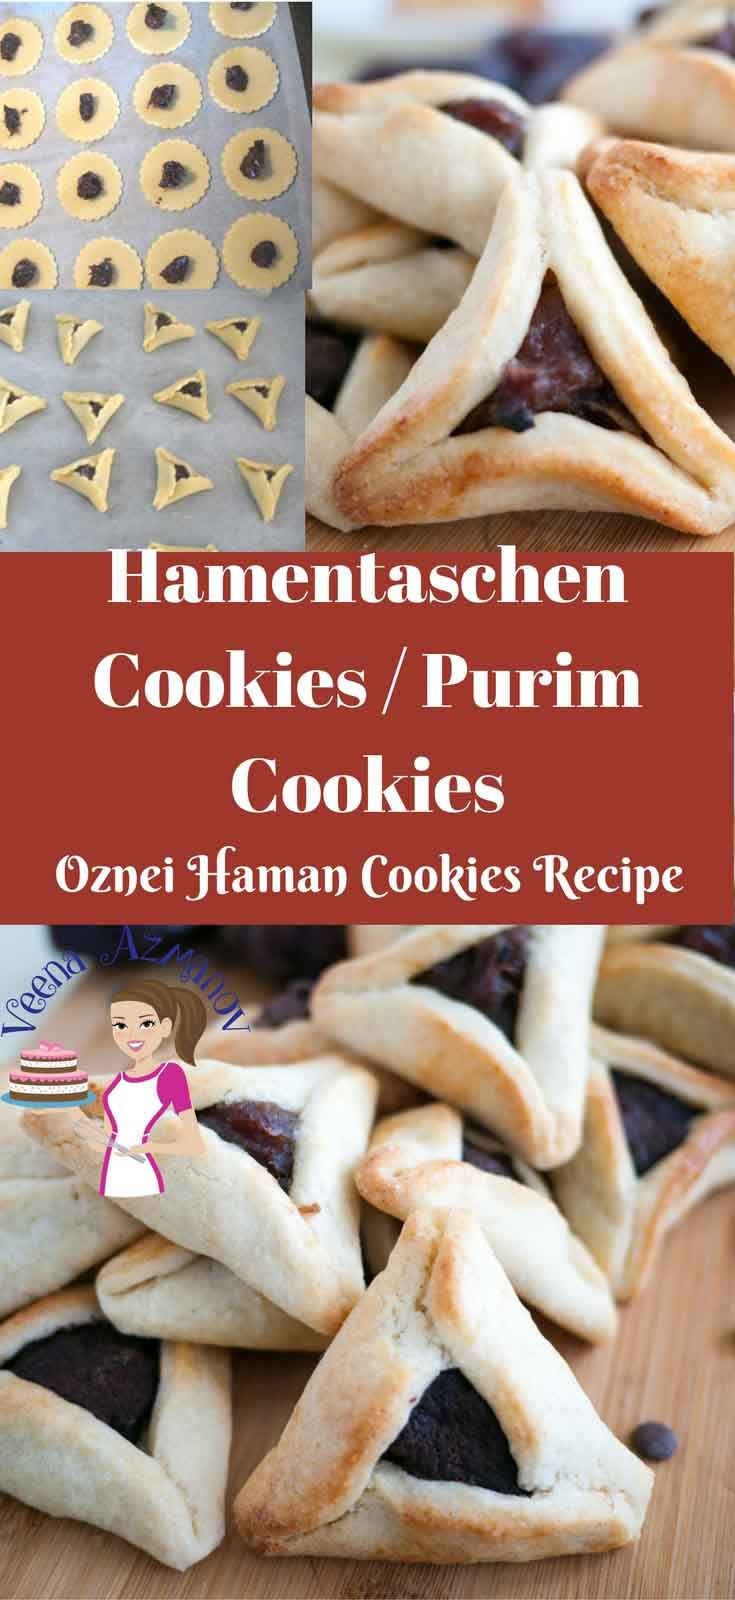 These Purim cookies are a special treat during the Jewish Purim festival with hundreds of choices for fillings from traditional poppy seed and dates to modern chocolate, dulce de leche and more. This simple, easy and effortless recipe uses shortcrust cookie dough as a base with easy to follow folding instructions to get the perfect Hamentaschen cookies. #Purim #cookies #hamentaschen #Oznie #haman #jewish #cooking #baking #recipe